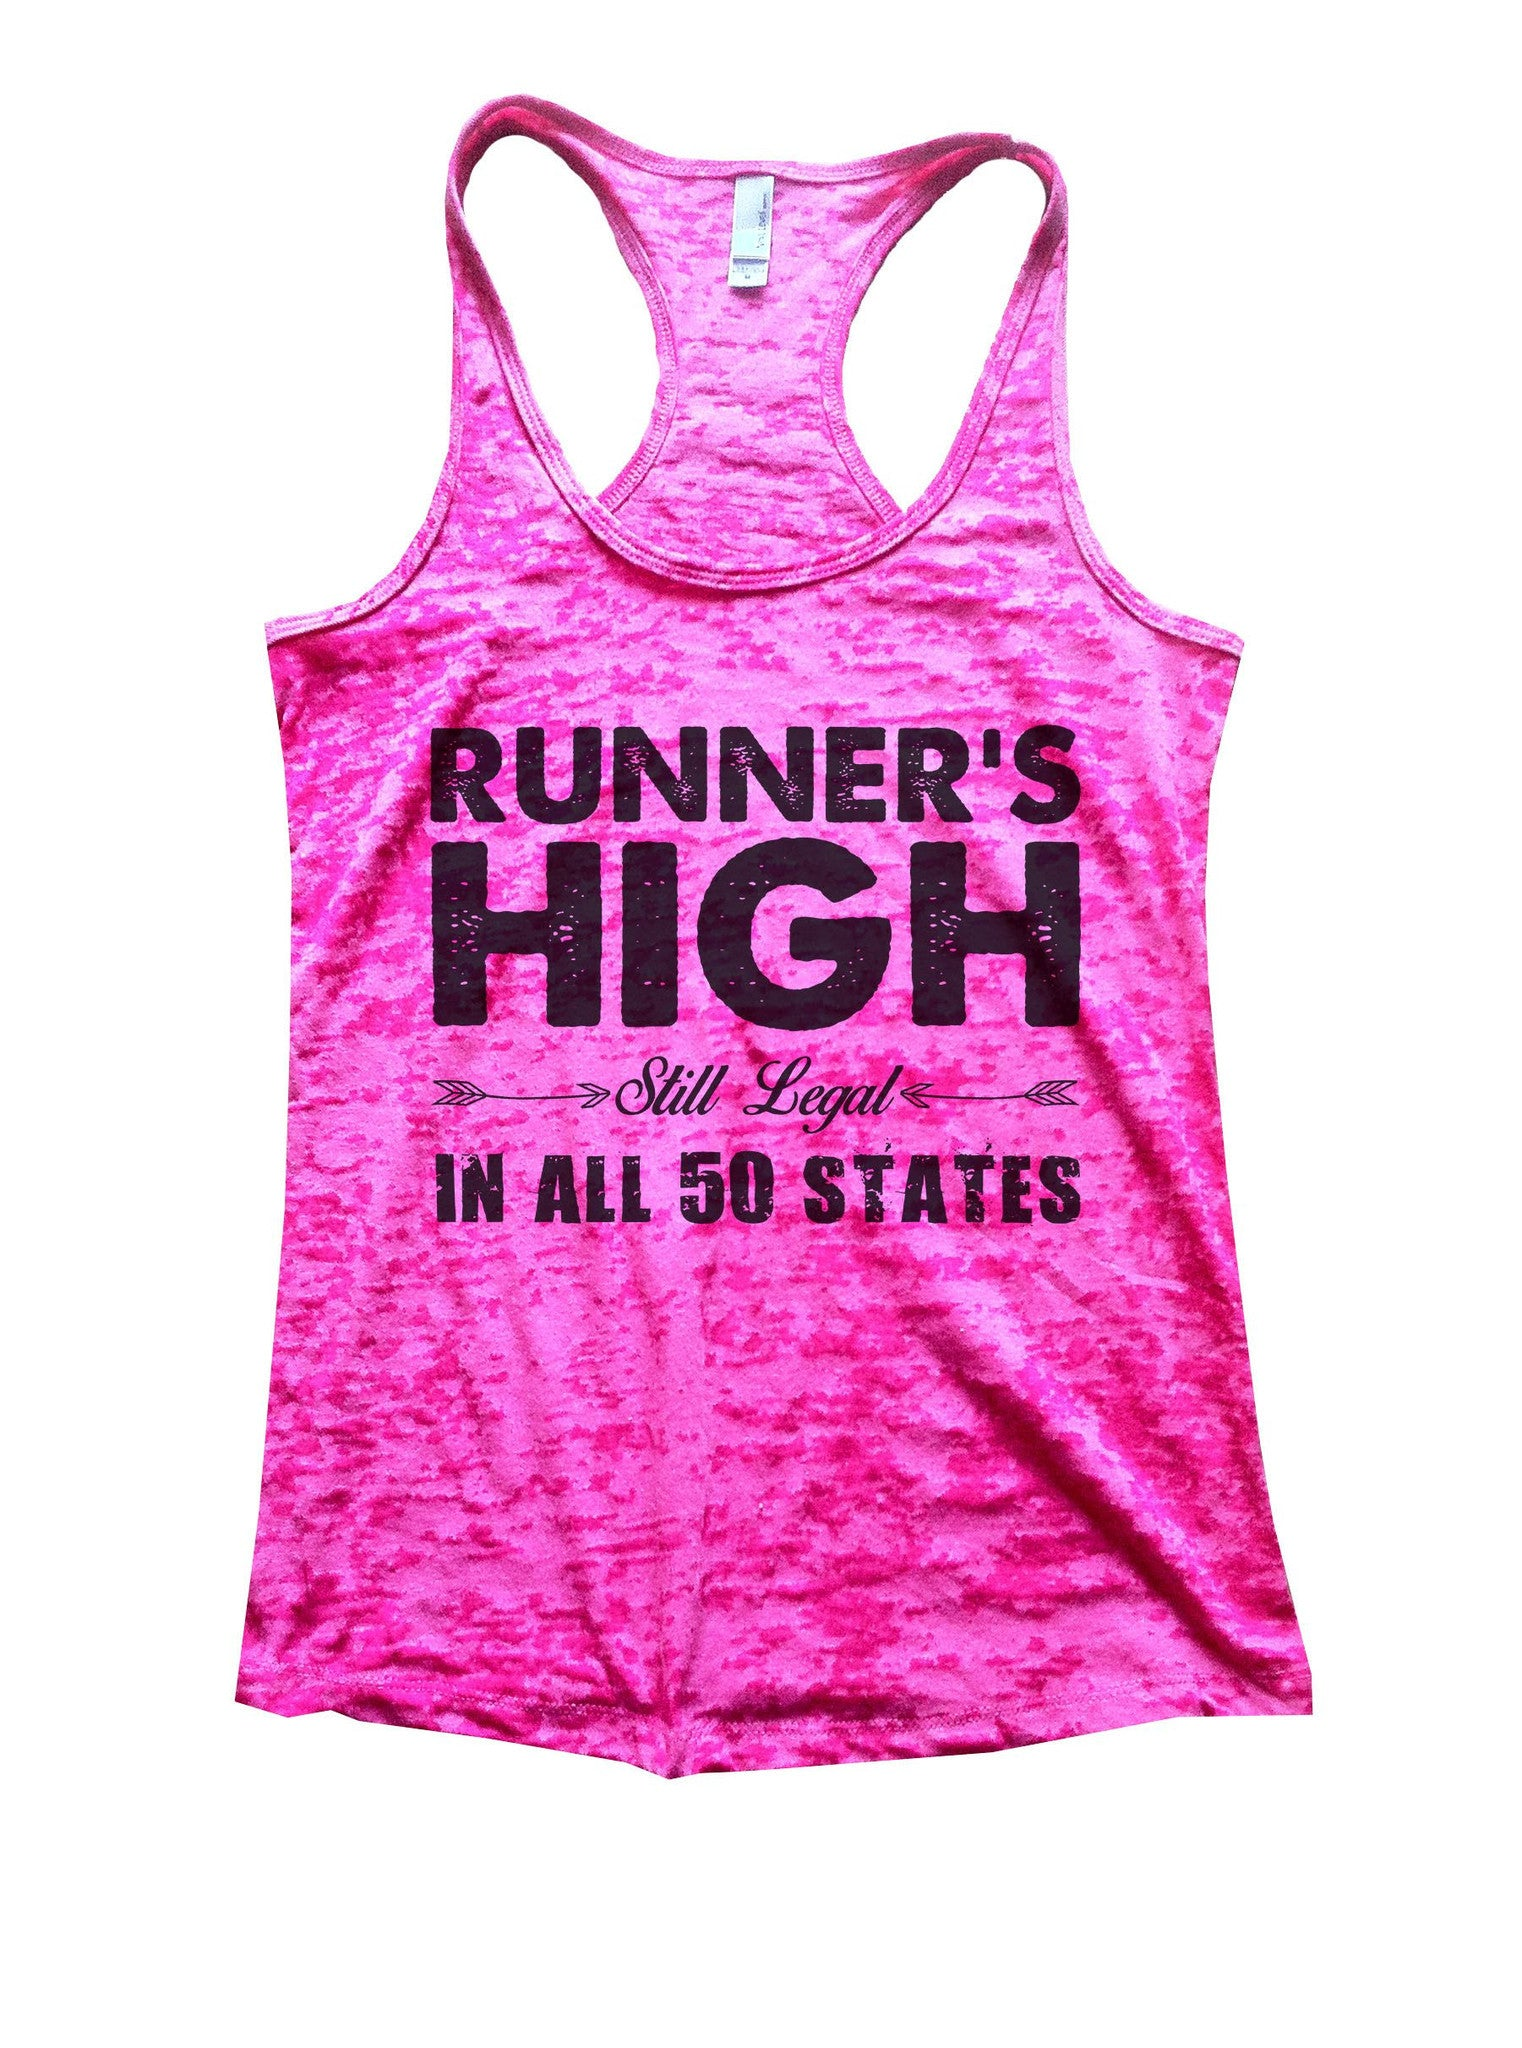 Runner's High Still Legal In All 50 States Burnout Tank Top By BurnoutTankTops.com - 902 - Funny Shirts Tank Tops Burnouts and Triblends  - 7